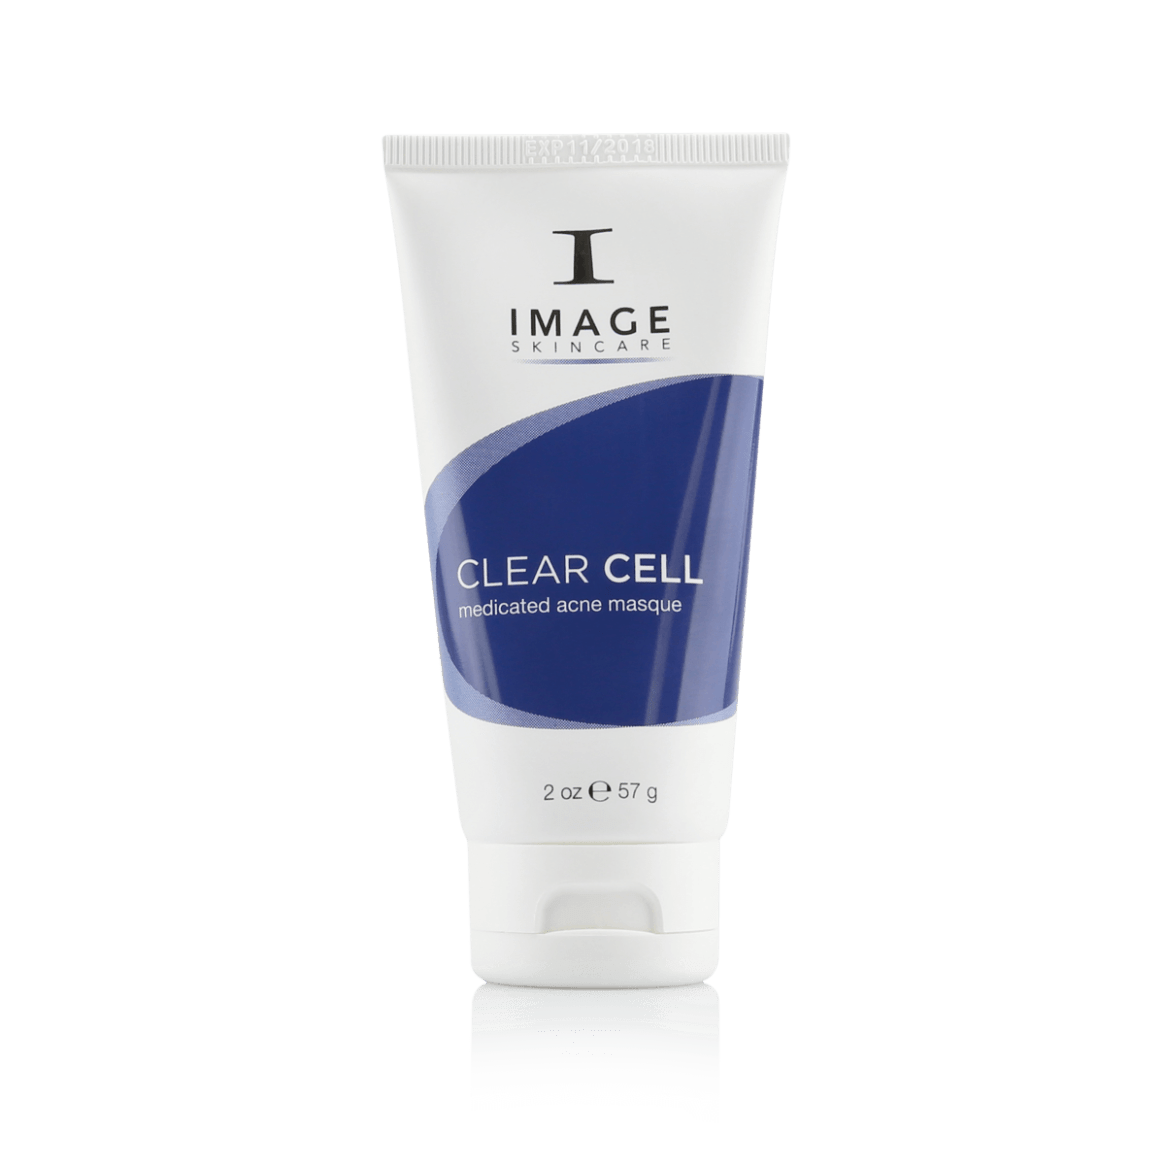 IMAGE Skincare Best face mask for acne prone skin